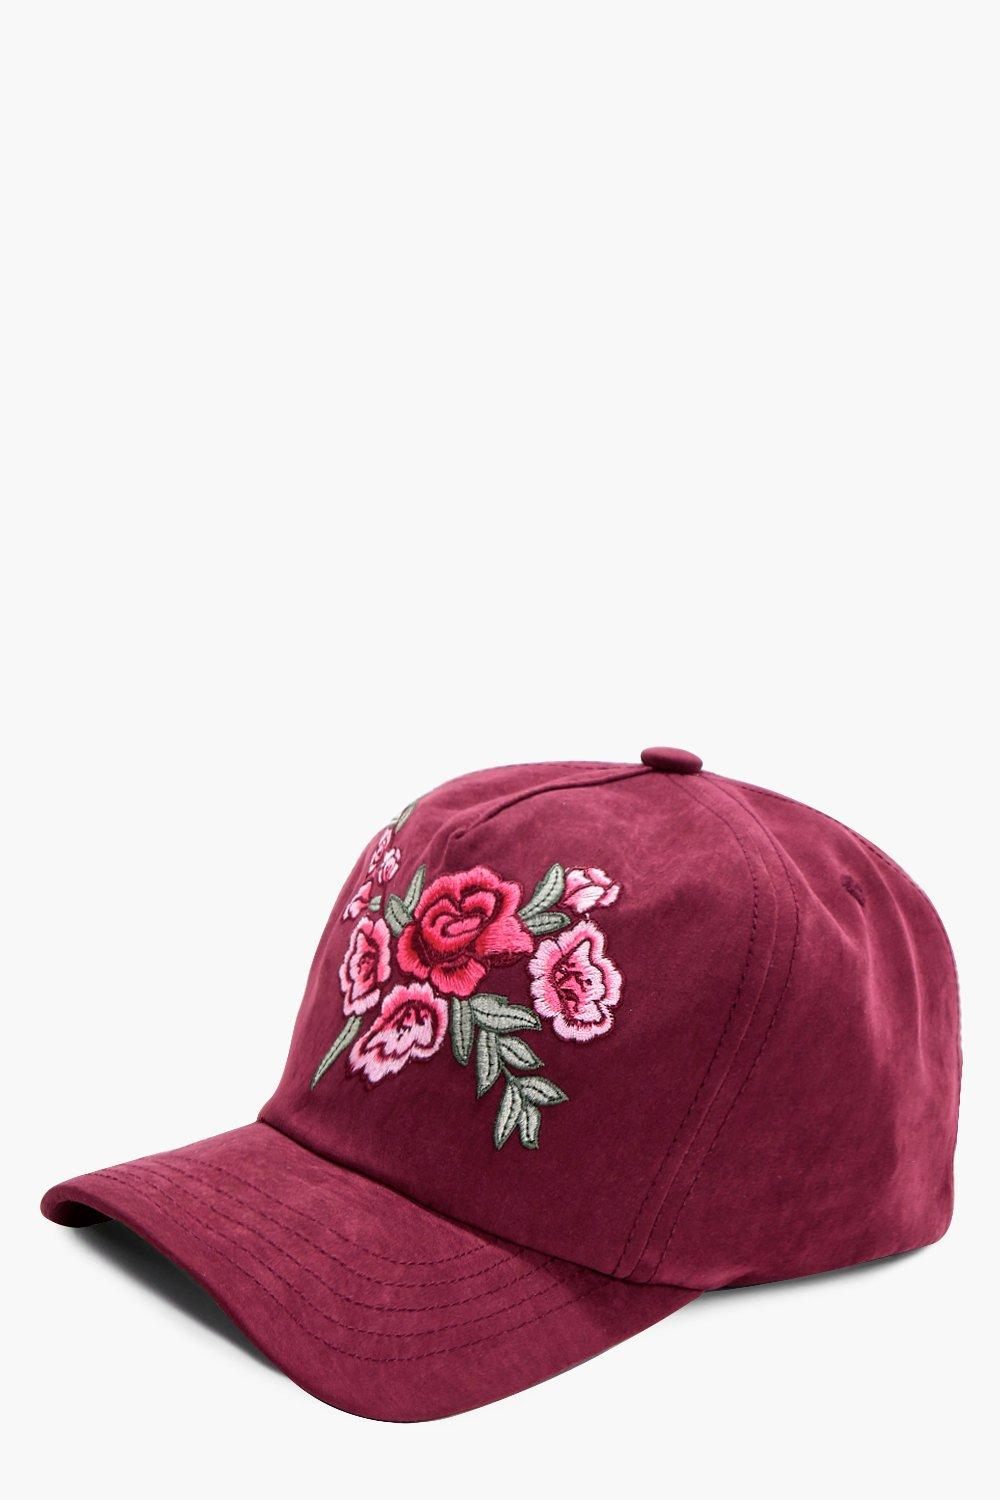 Embroidery Suedette Cap - burgundy - Emma Embroide